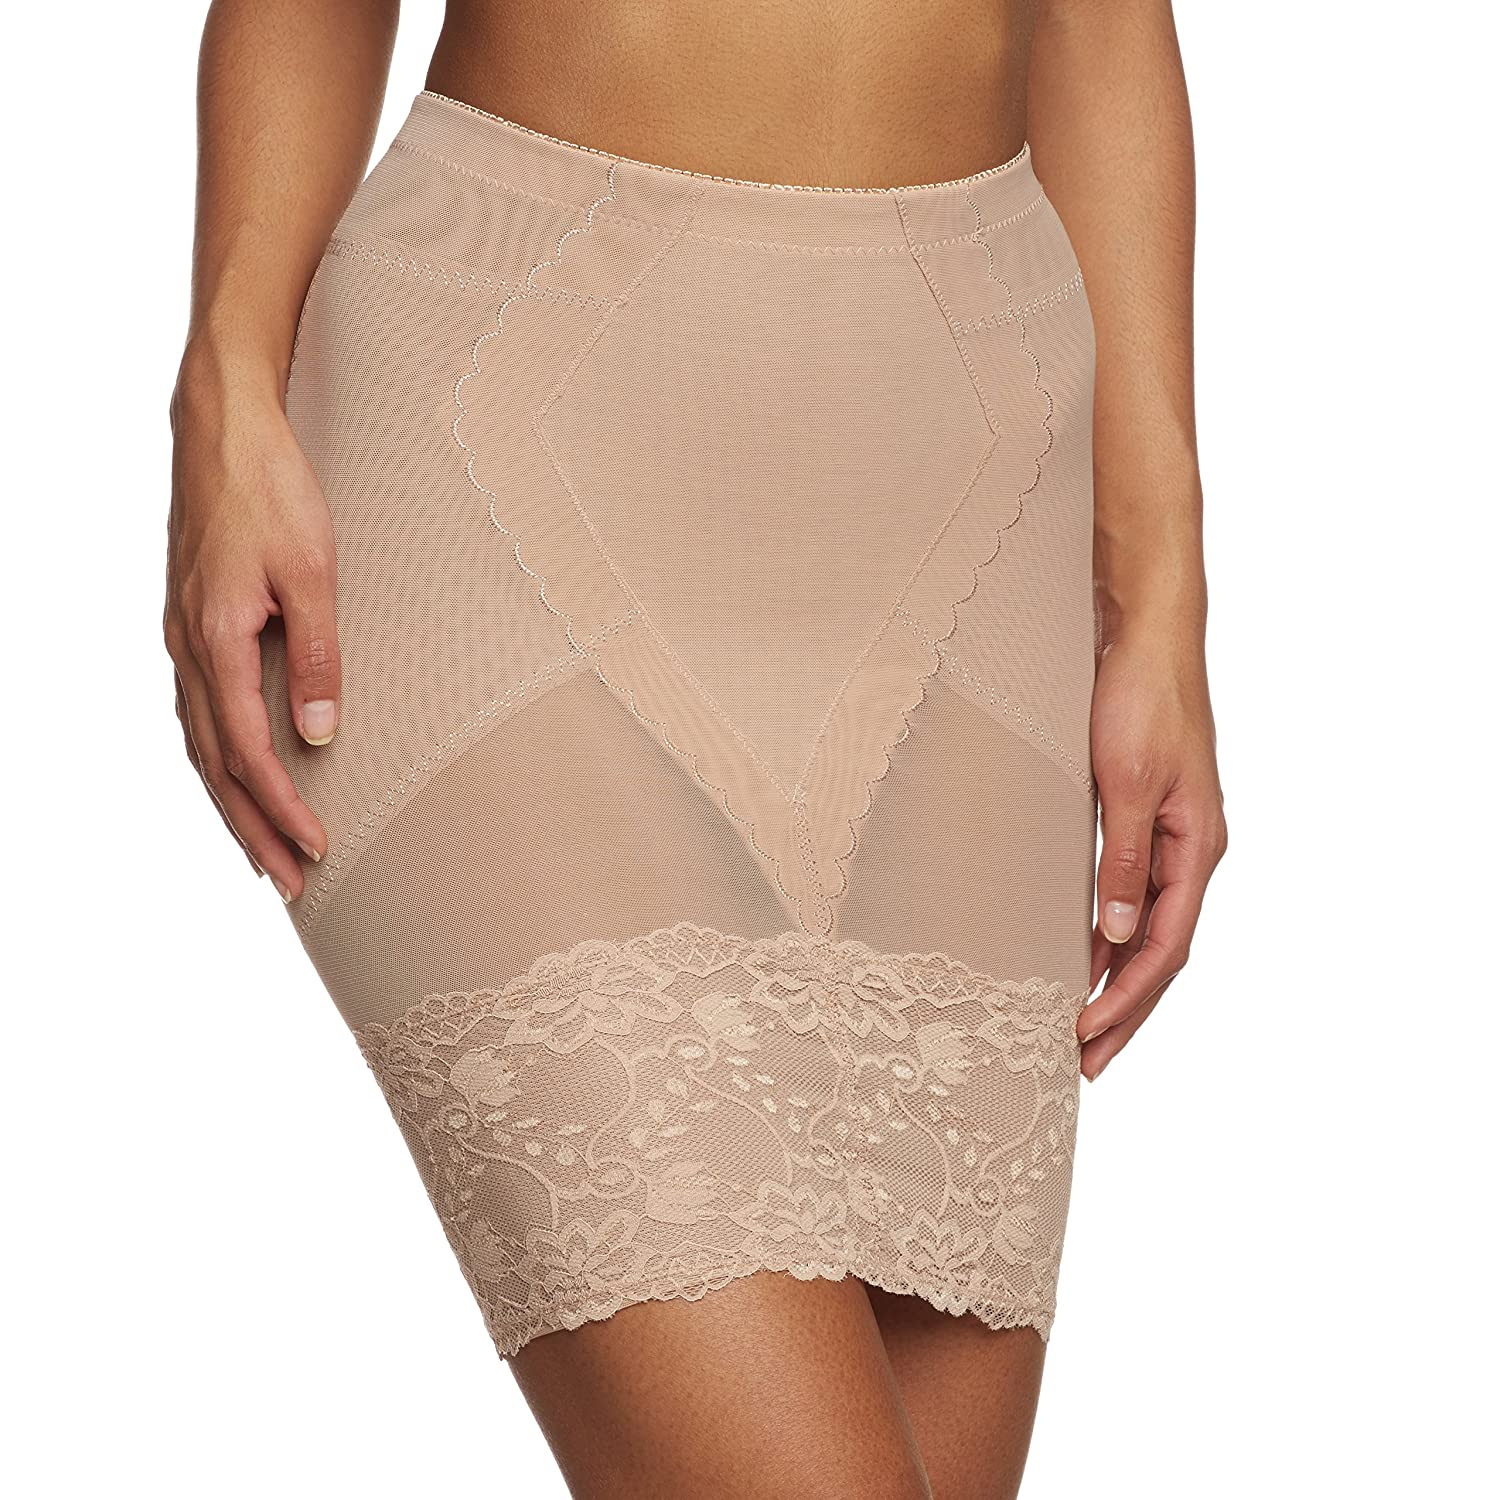 Magic Bodyfashion Women's Super Control Skirt With Lace Plain Shaping Half Slip